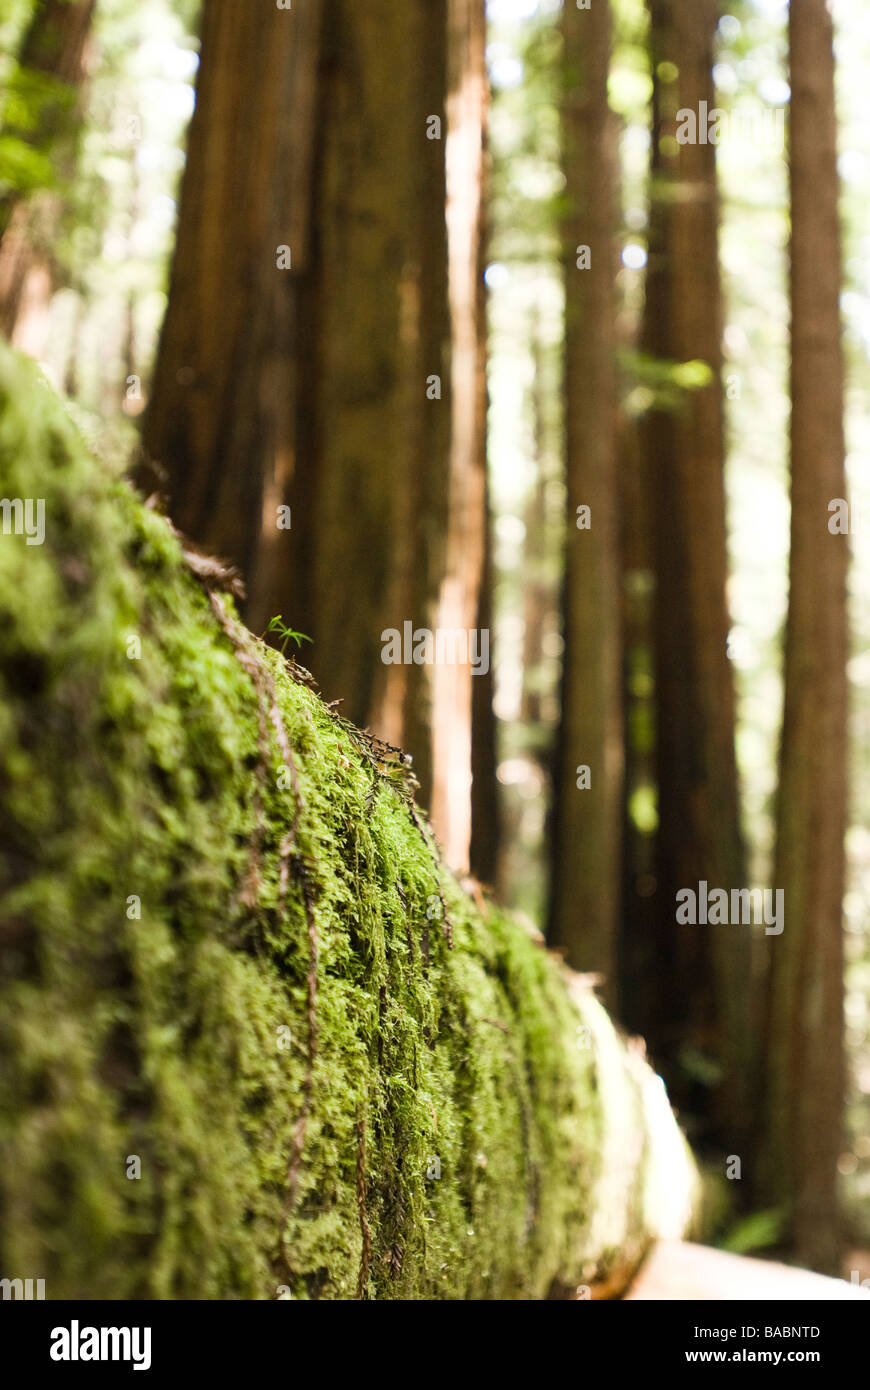 Sequoia Forest in California - Stock Image